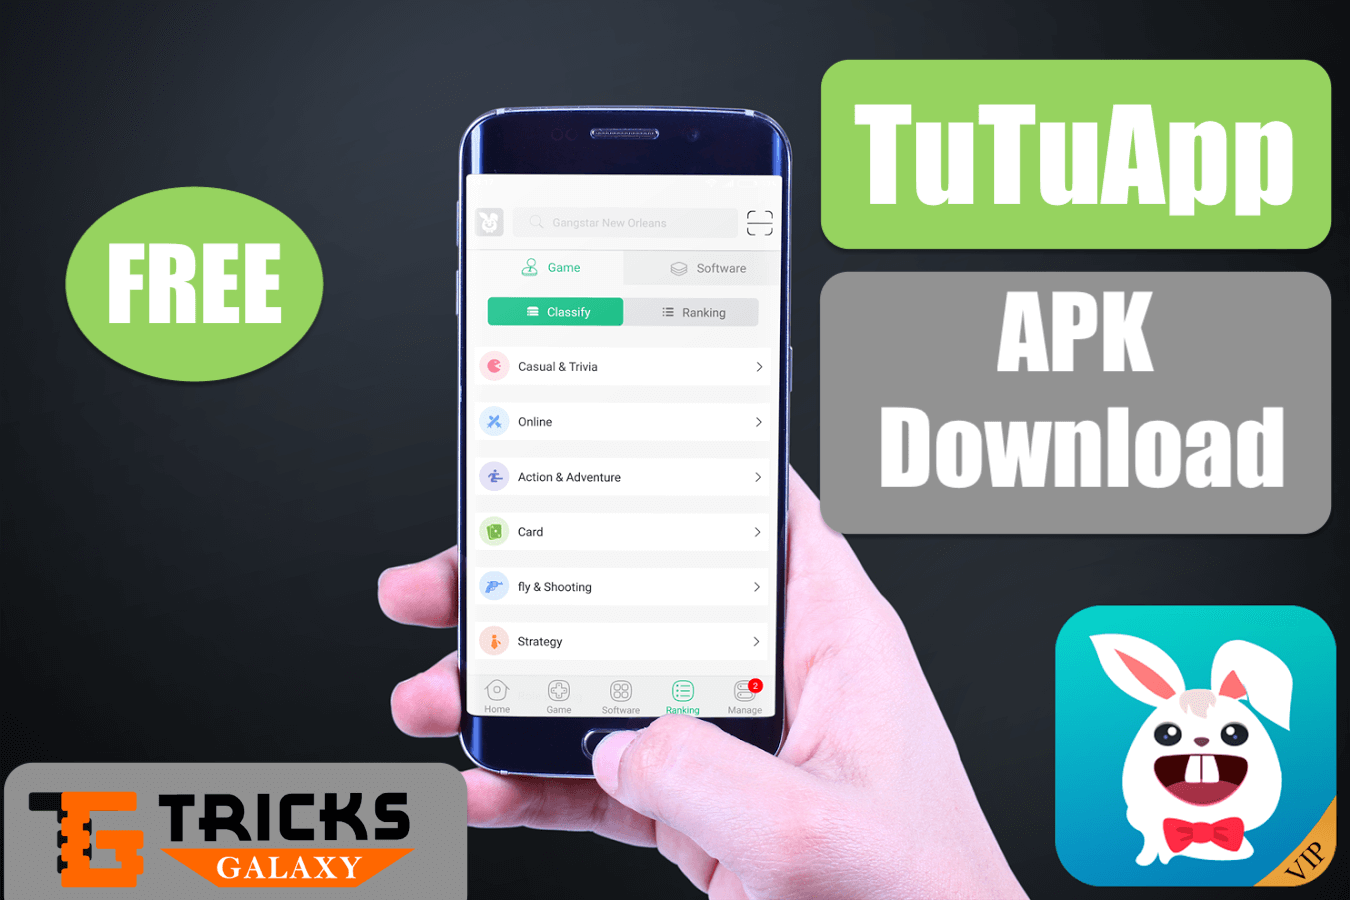 TuTuApp APK Download Free